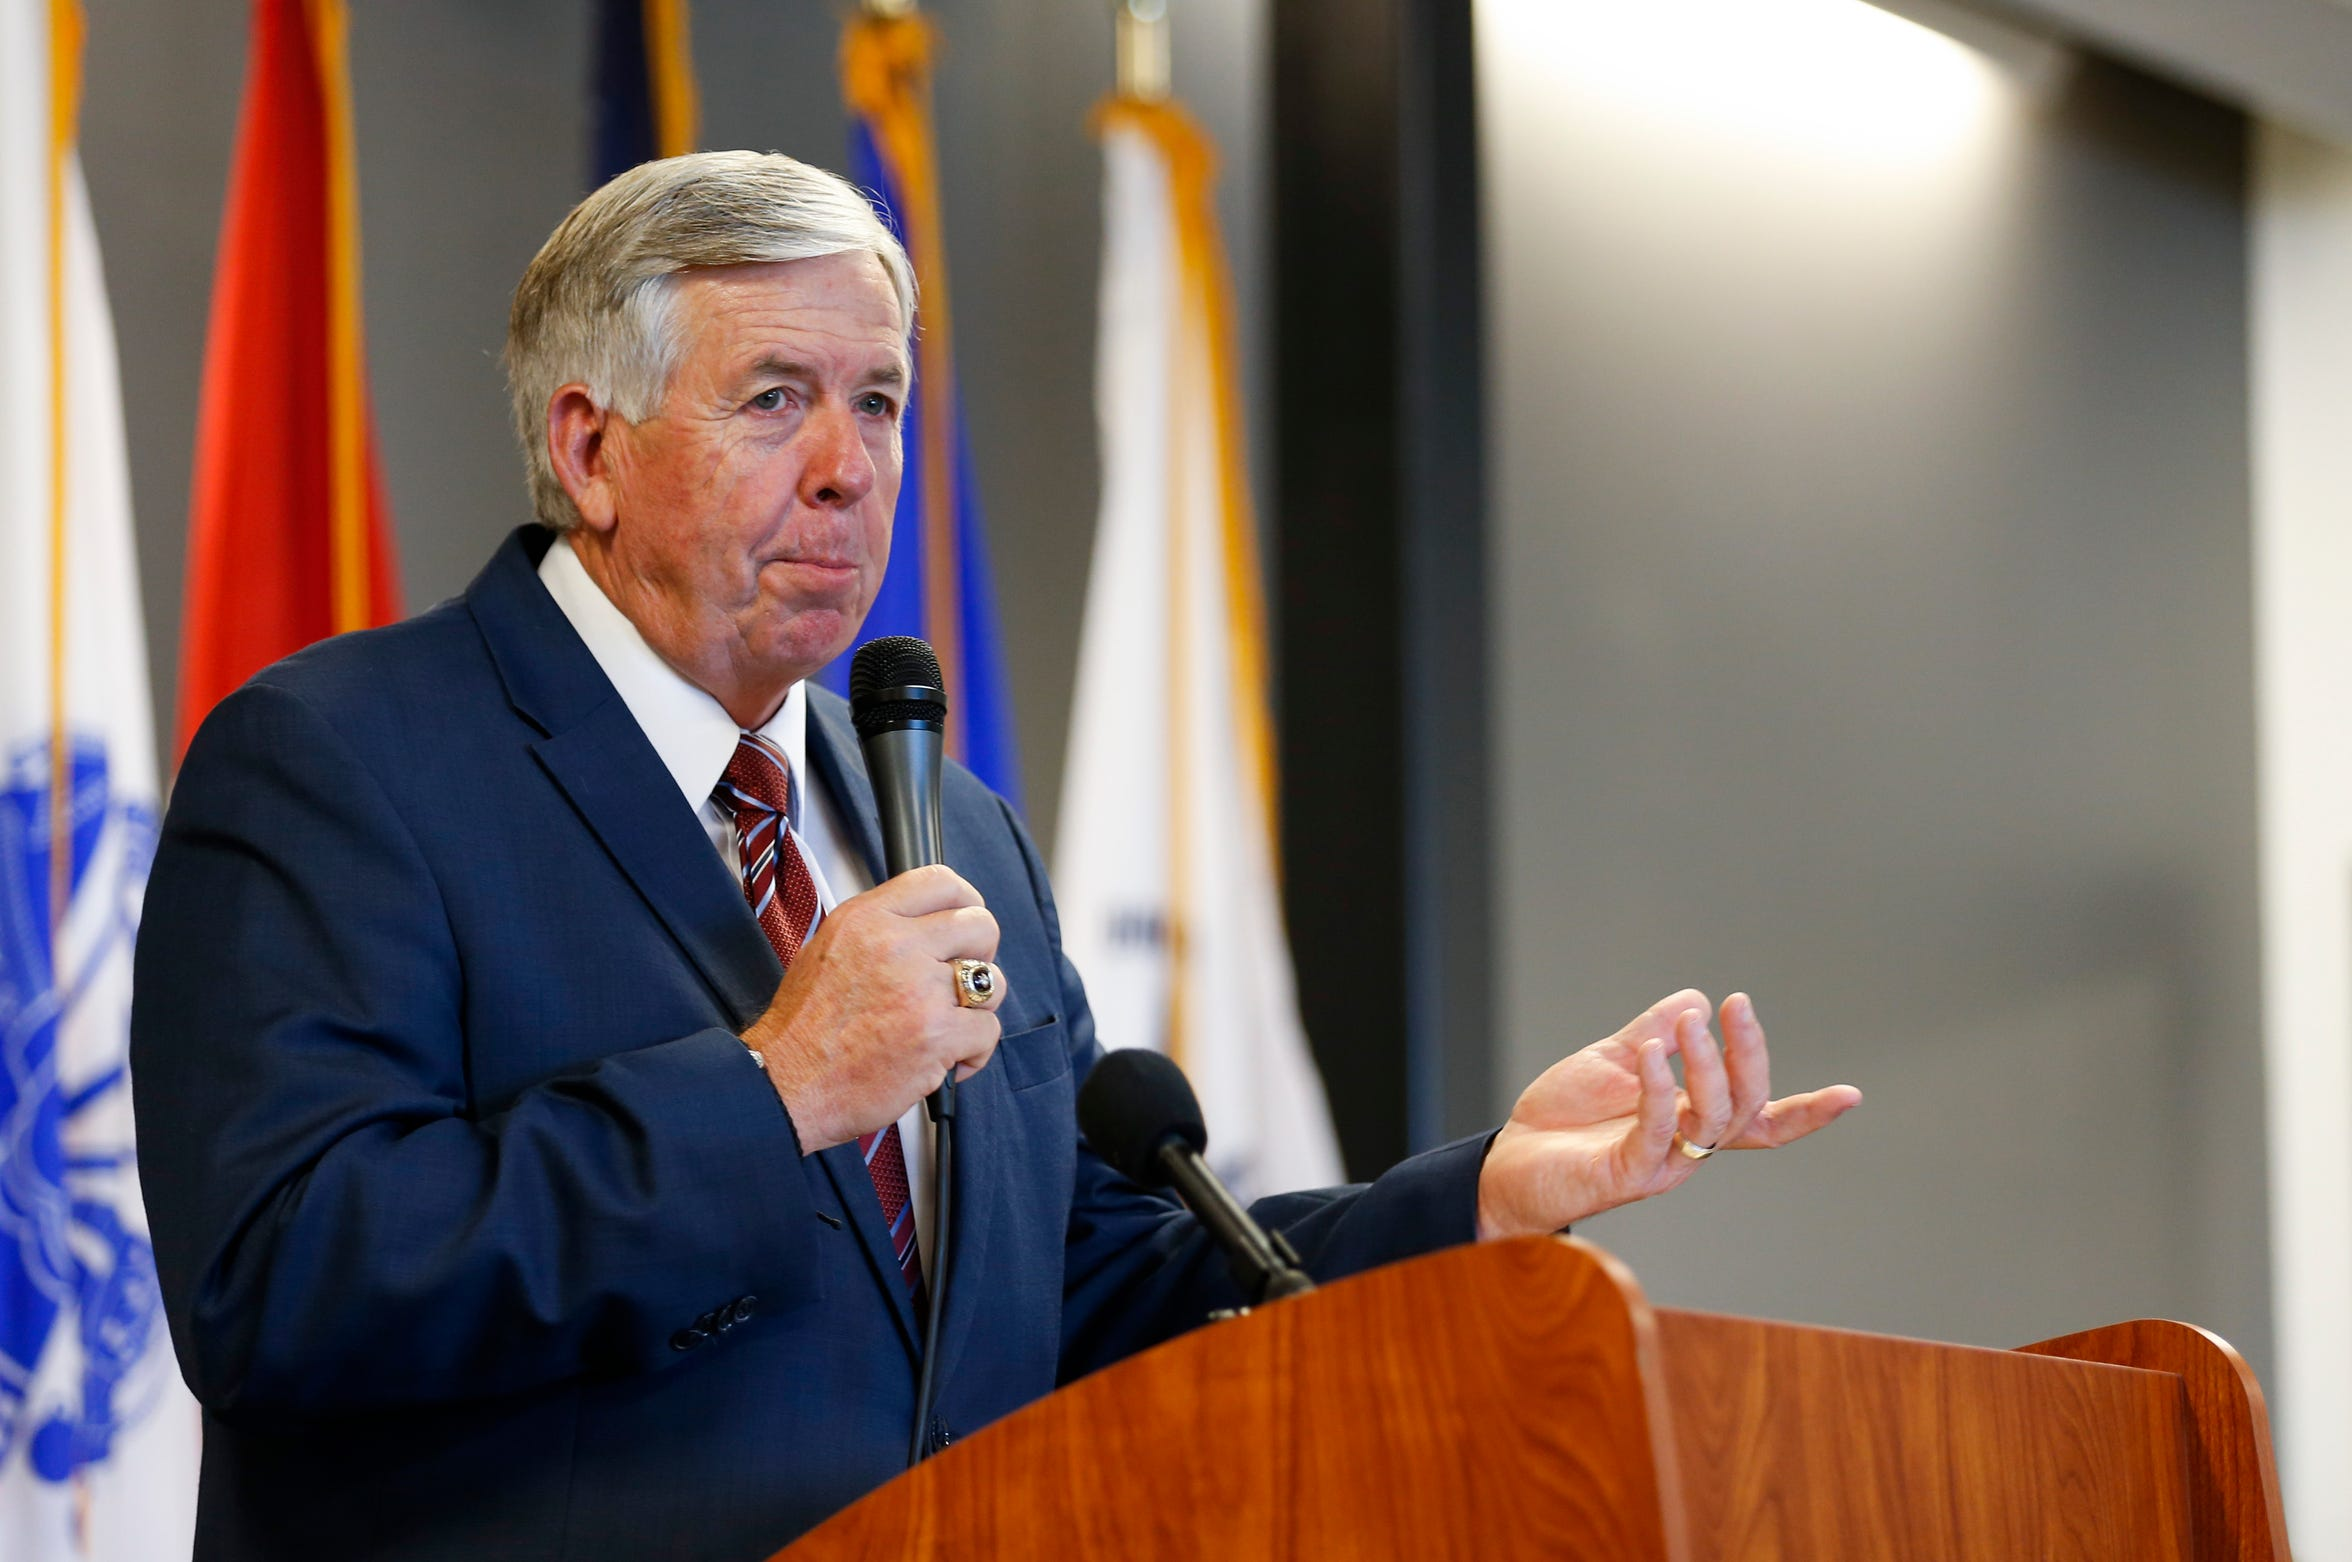 Missouri Gov. Mike Parson speaks to a room full of Missouri and local lawmakers and others on Tuesday, Sept. 4, 2018. The governor does not support minimum-wage increases at this time.